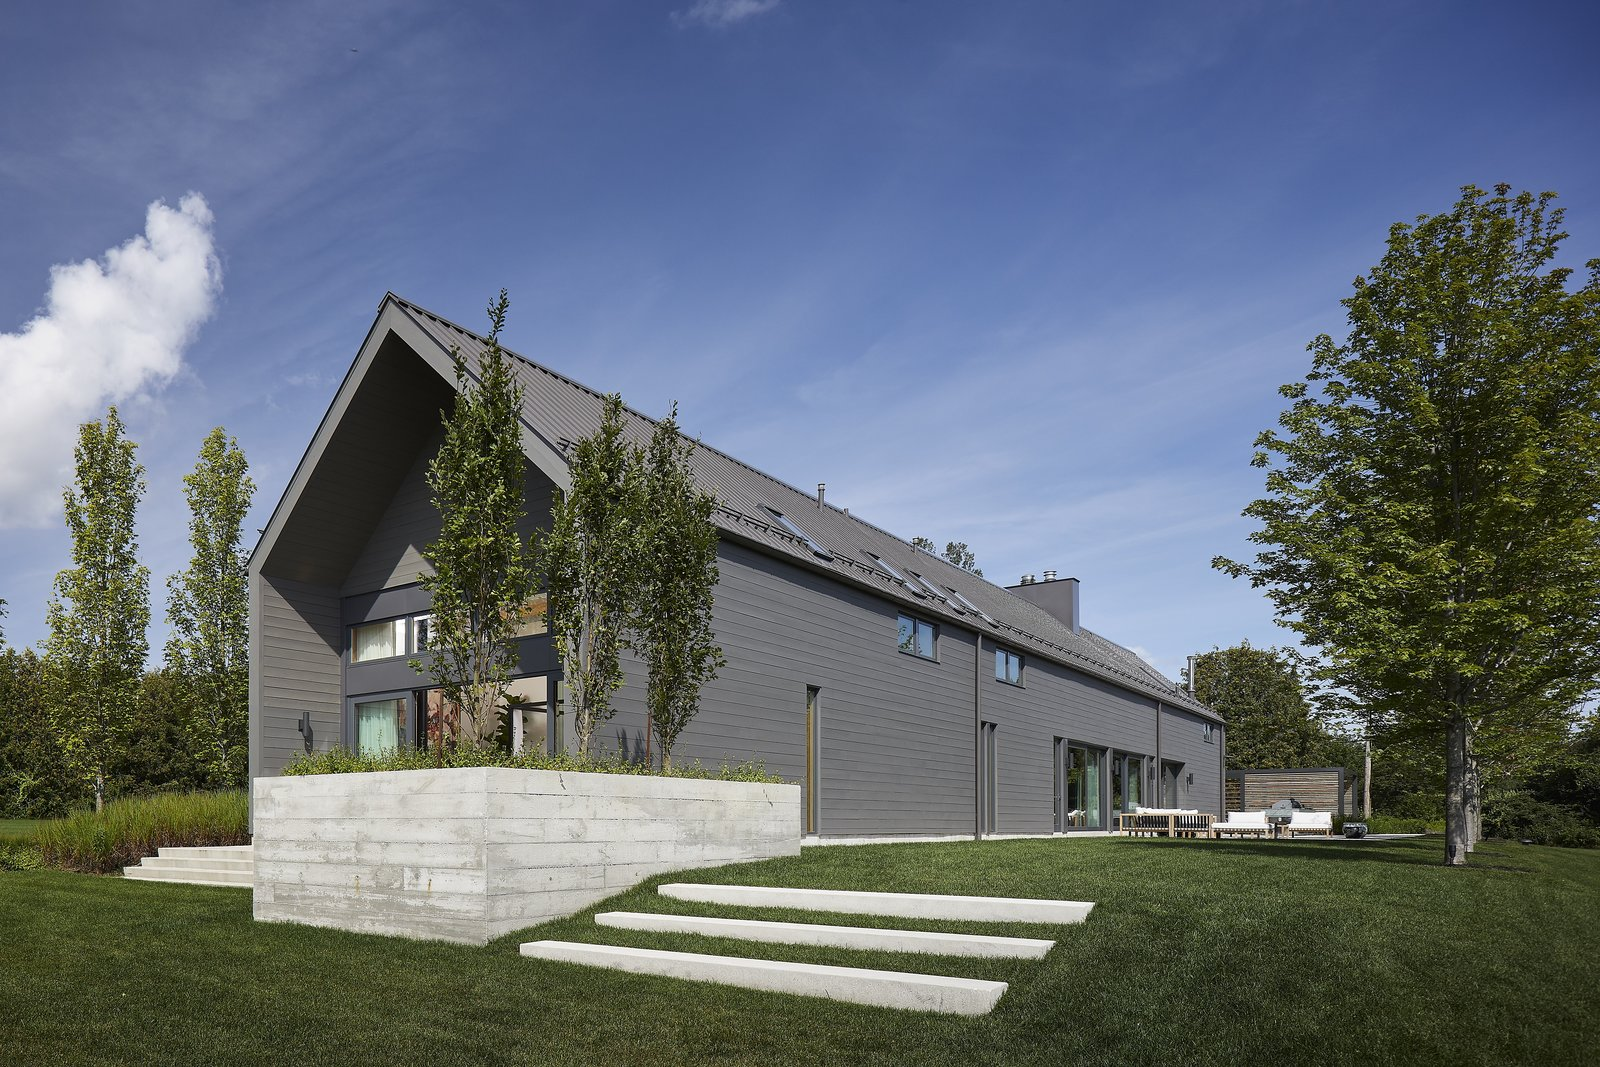 Exterior, Farmhouse Building Type, Wood Siding Material, Gable RoofLine, and Metal Roof Material  Best Photos from This Modern Farmhouse Outside Toronto Makes Its Own Rules